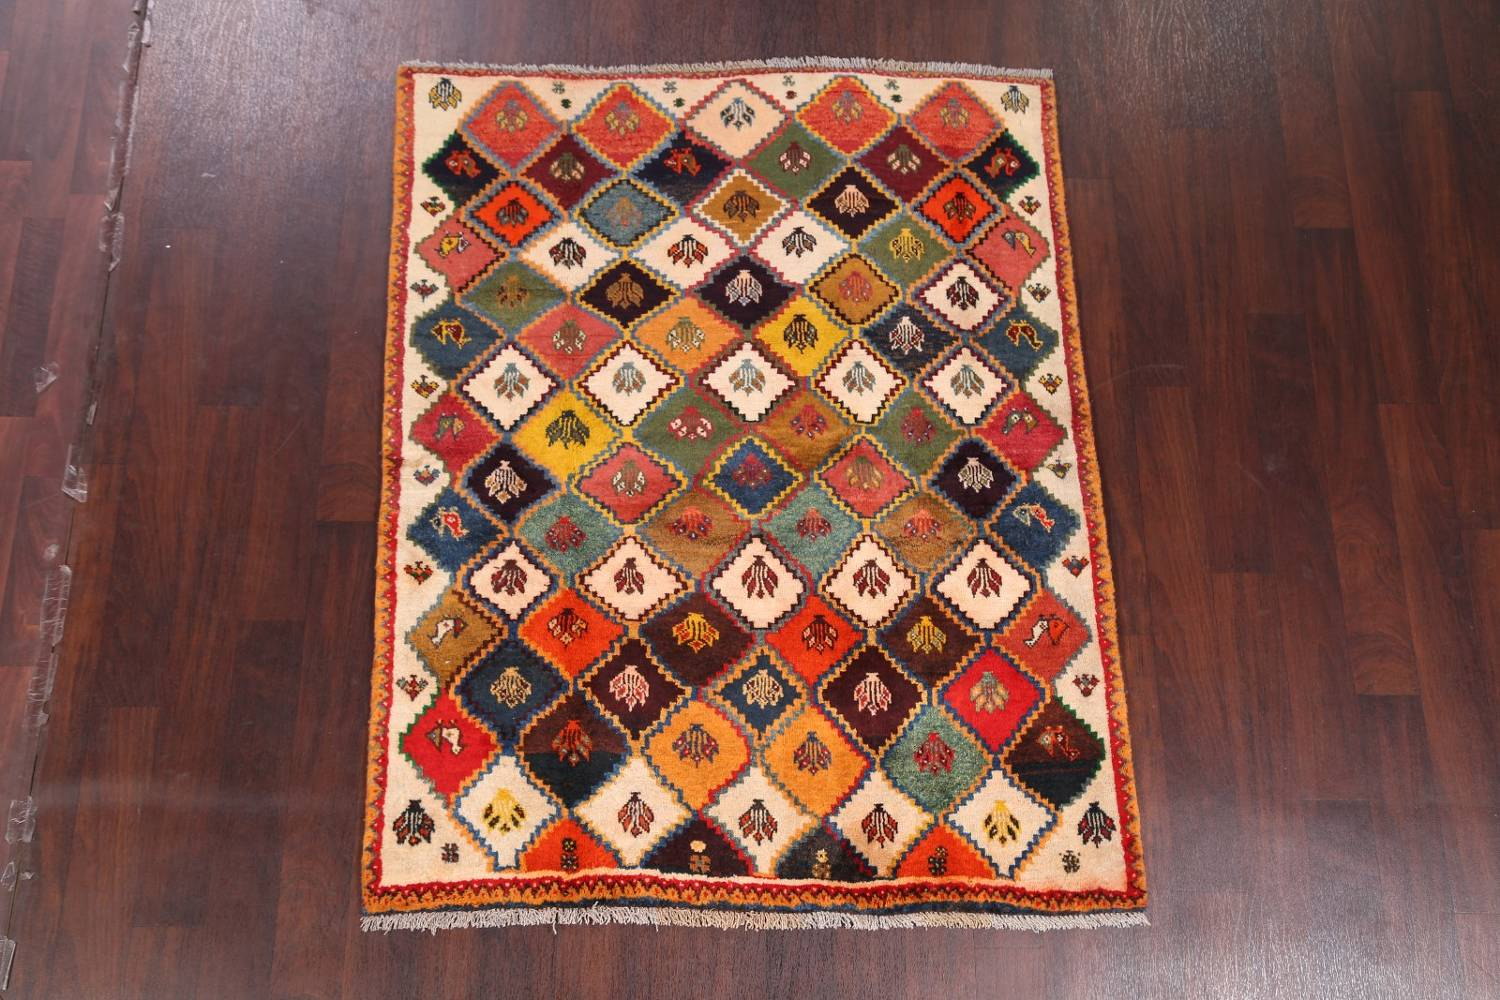 Tribal Geometric Gabbeh Shiraz Persian Hand-Knotted Area Rug Wool 5x6 image 2